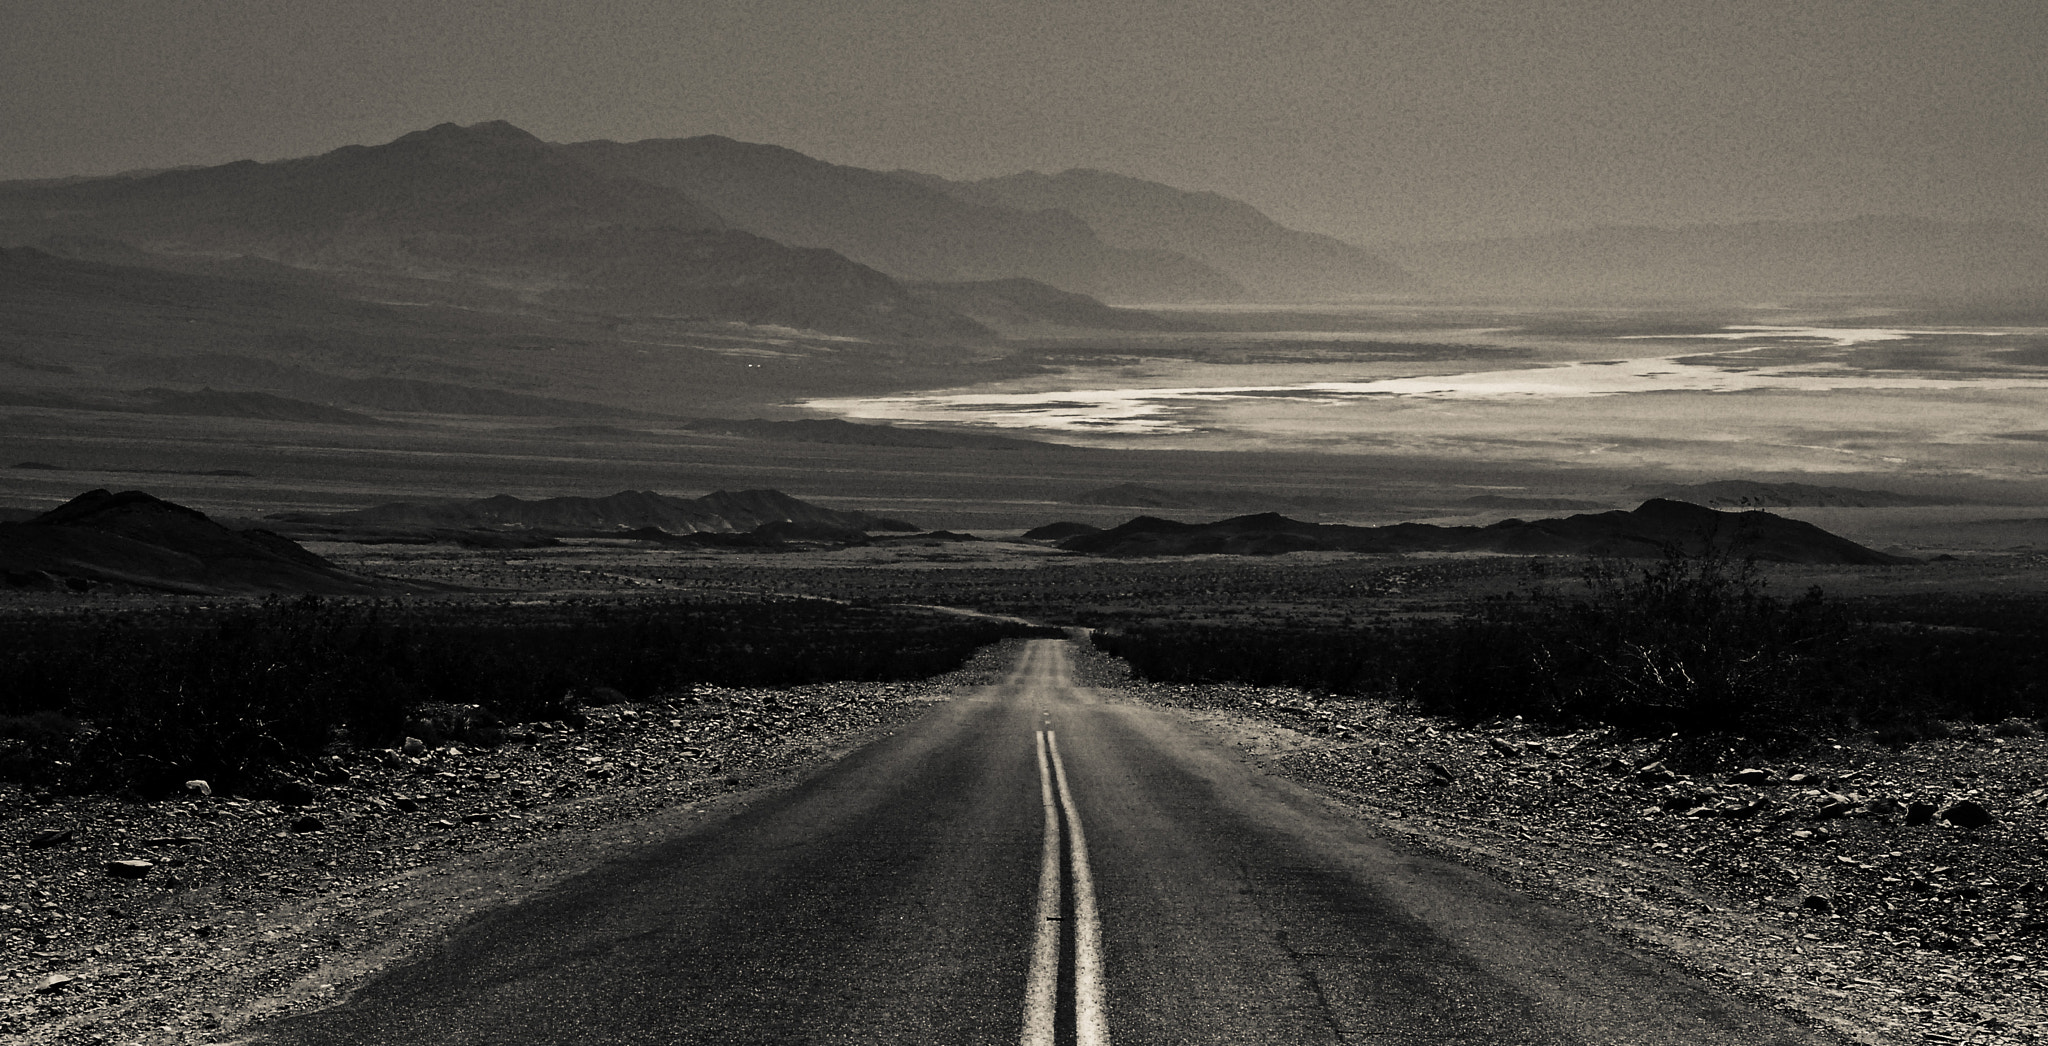 Photograph The road to nowhere by Bogdan Stefan on 500px